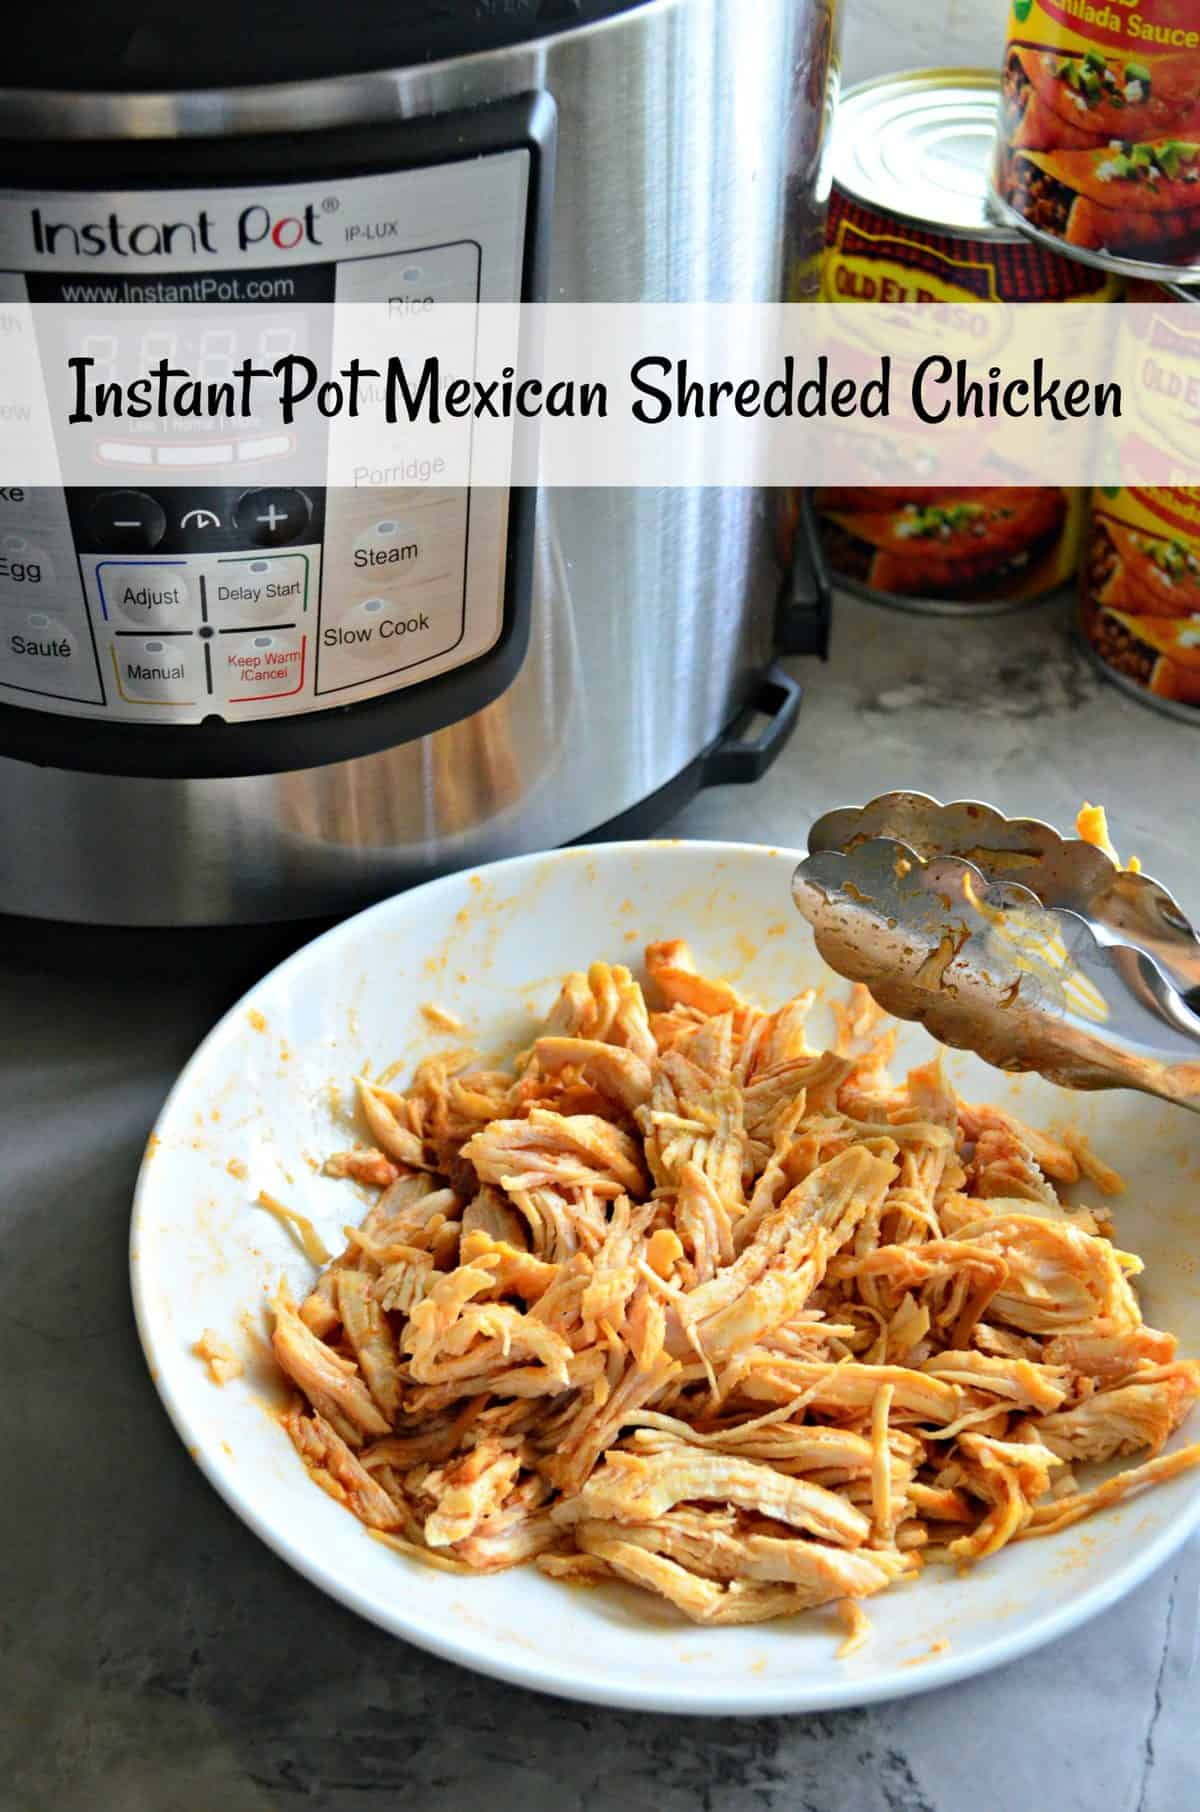 white bowl of shredded chicken with orange/red sauce and tongues on countertop in front of instant pot with title text.